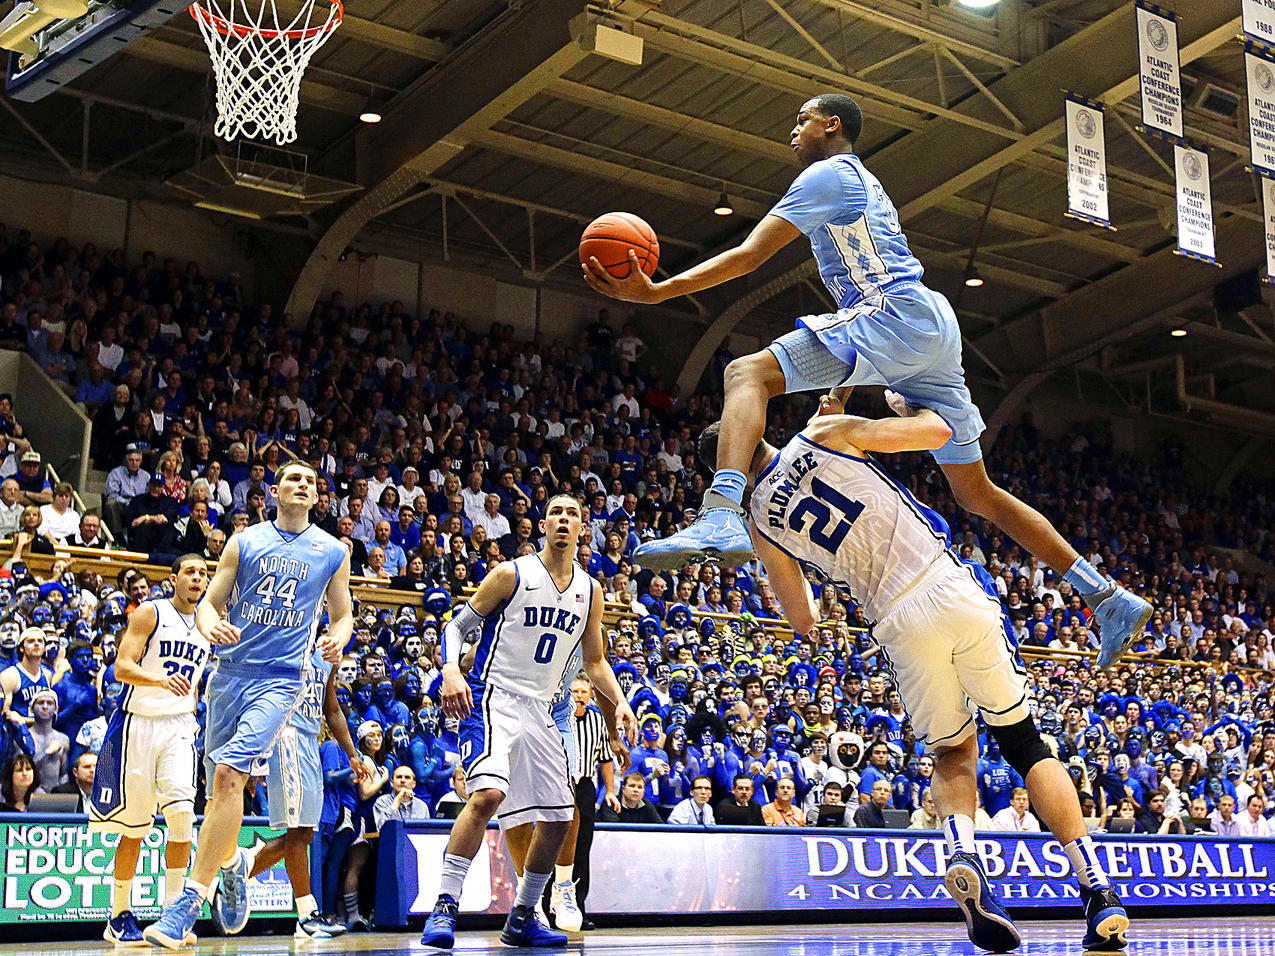 North Carolina's John Henson jumps over Duke's Miles Plumlee during Saturday's game. The Tar Heels dominated from start to finish, defeating the Blue Devils 88-70. (AP) DAUSTER: Tar Heels send message to Duke with impressive victory